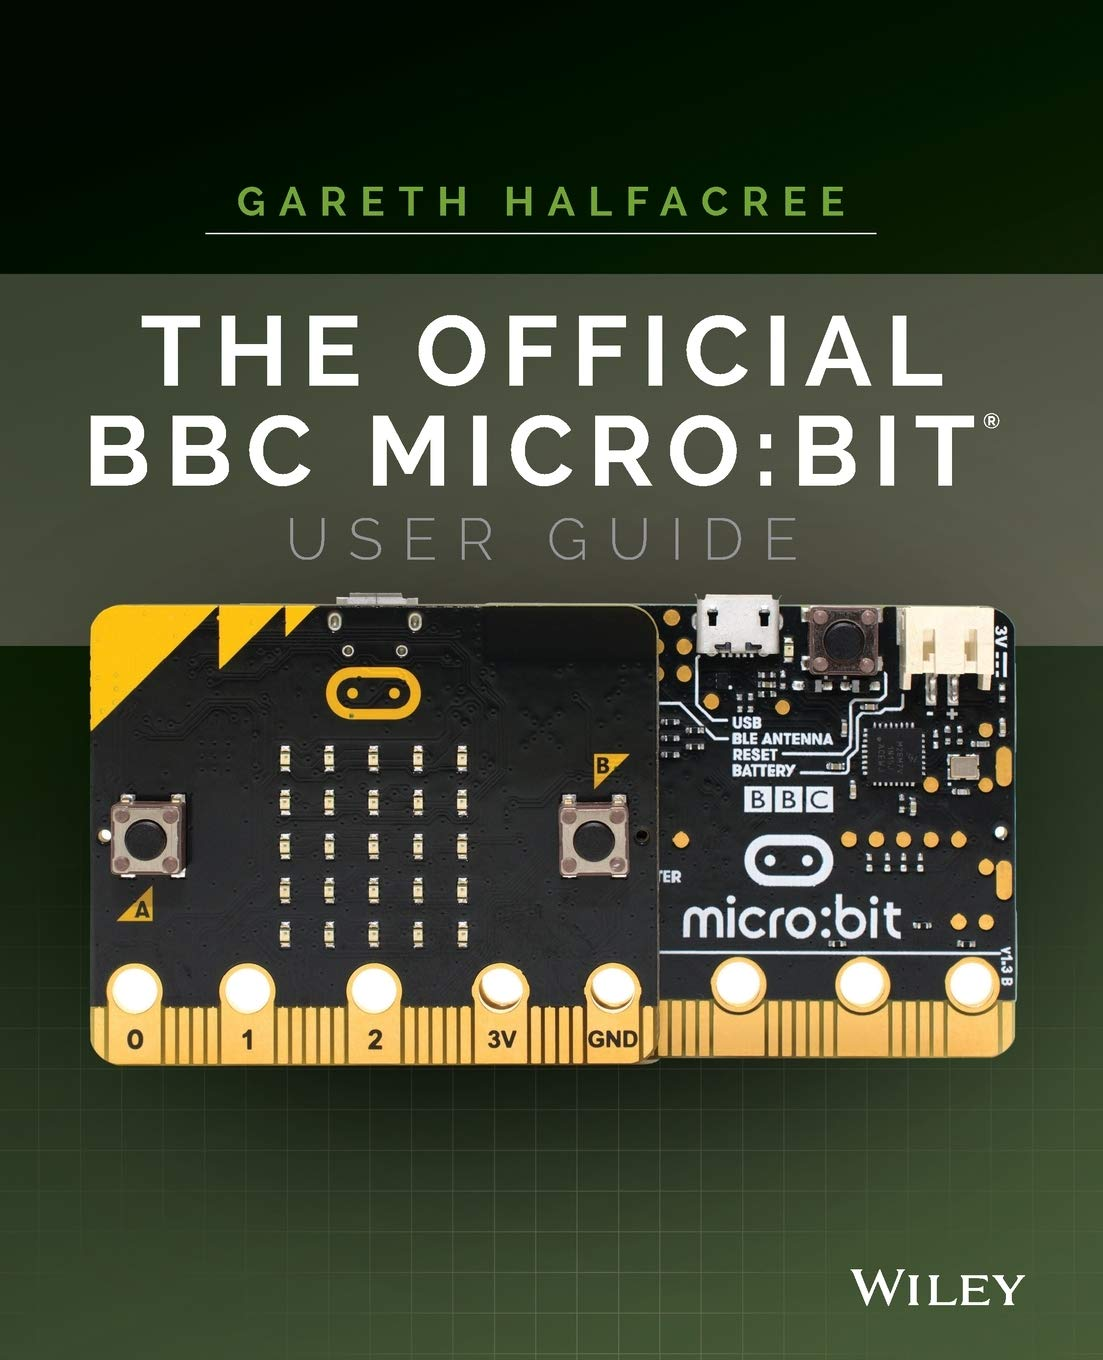 The Official BBC Micro:bit User Guide: Bit User Guide P